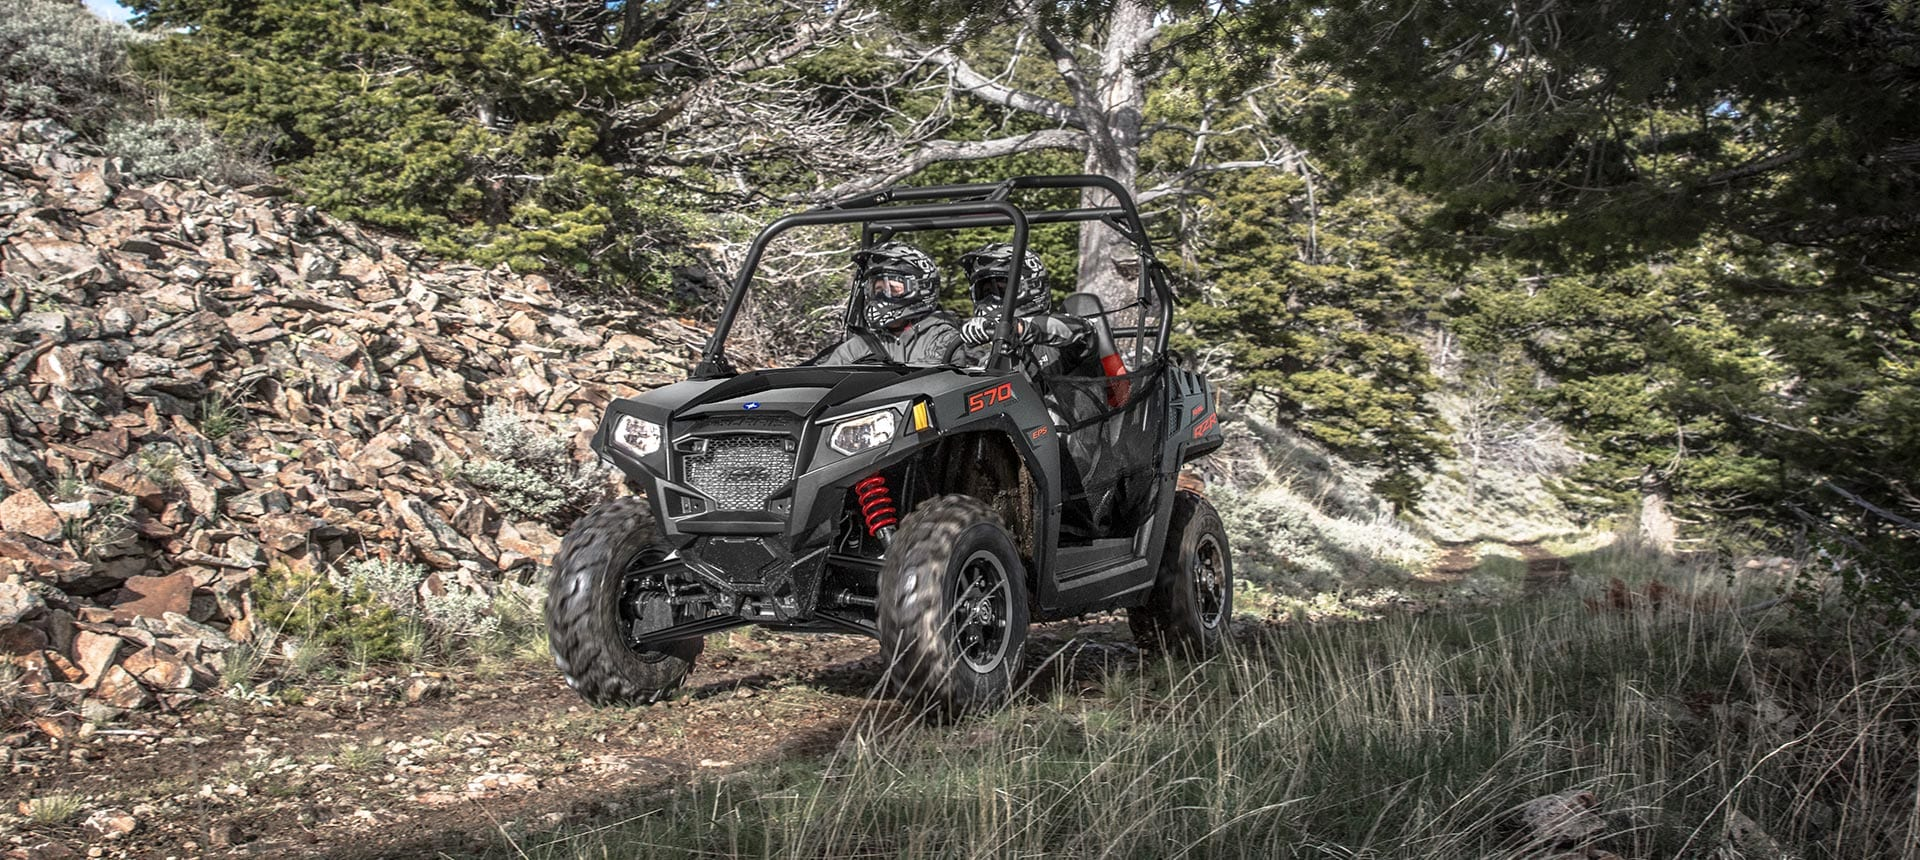 RZR 570 OFFROADING CAR